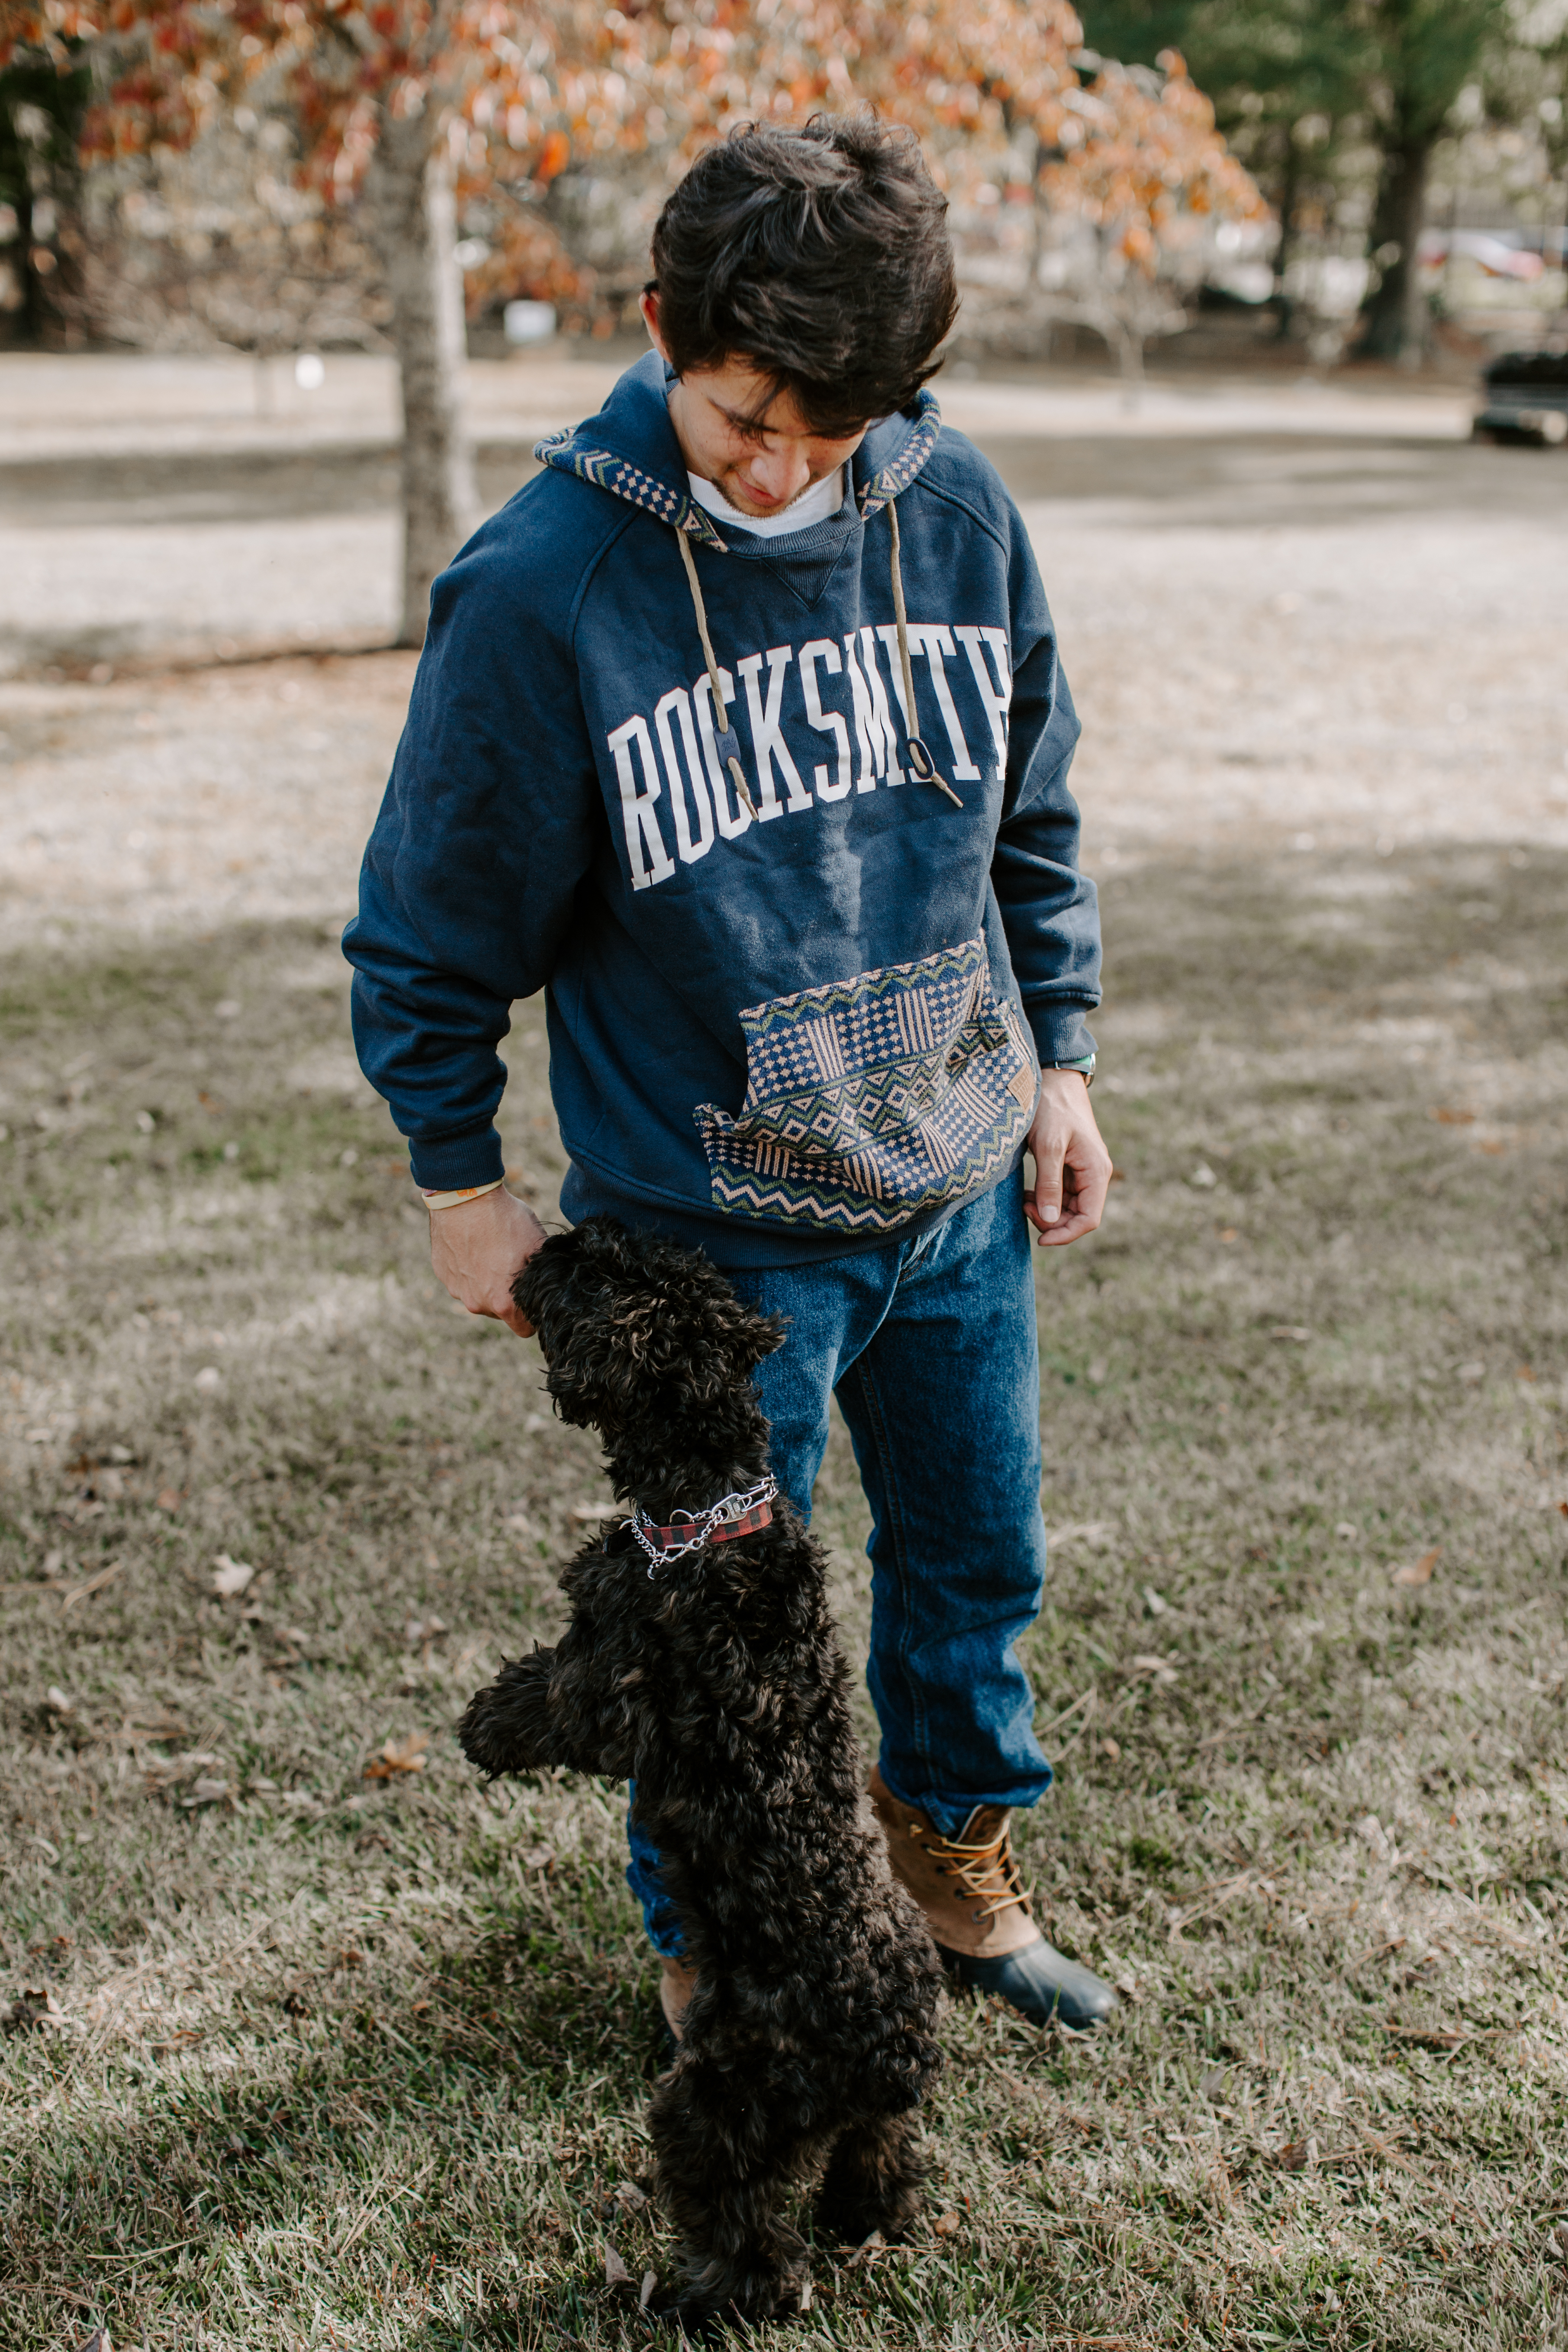 Christian O. Senior pictures collared shirt button up stairs poses pictures baseball senior garden dog and man open field golden hour sweatshirt